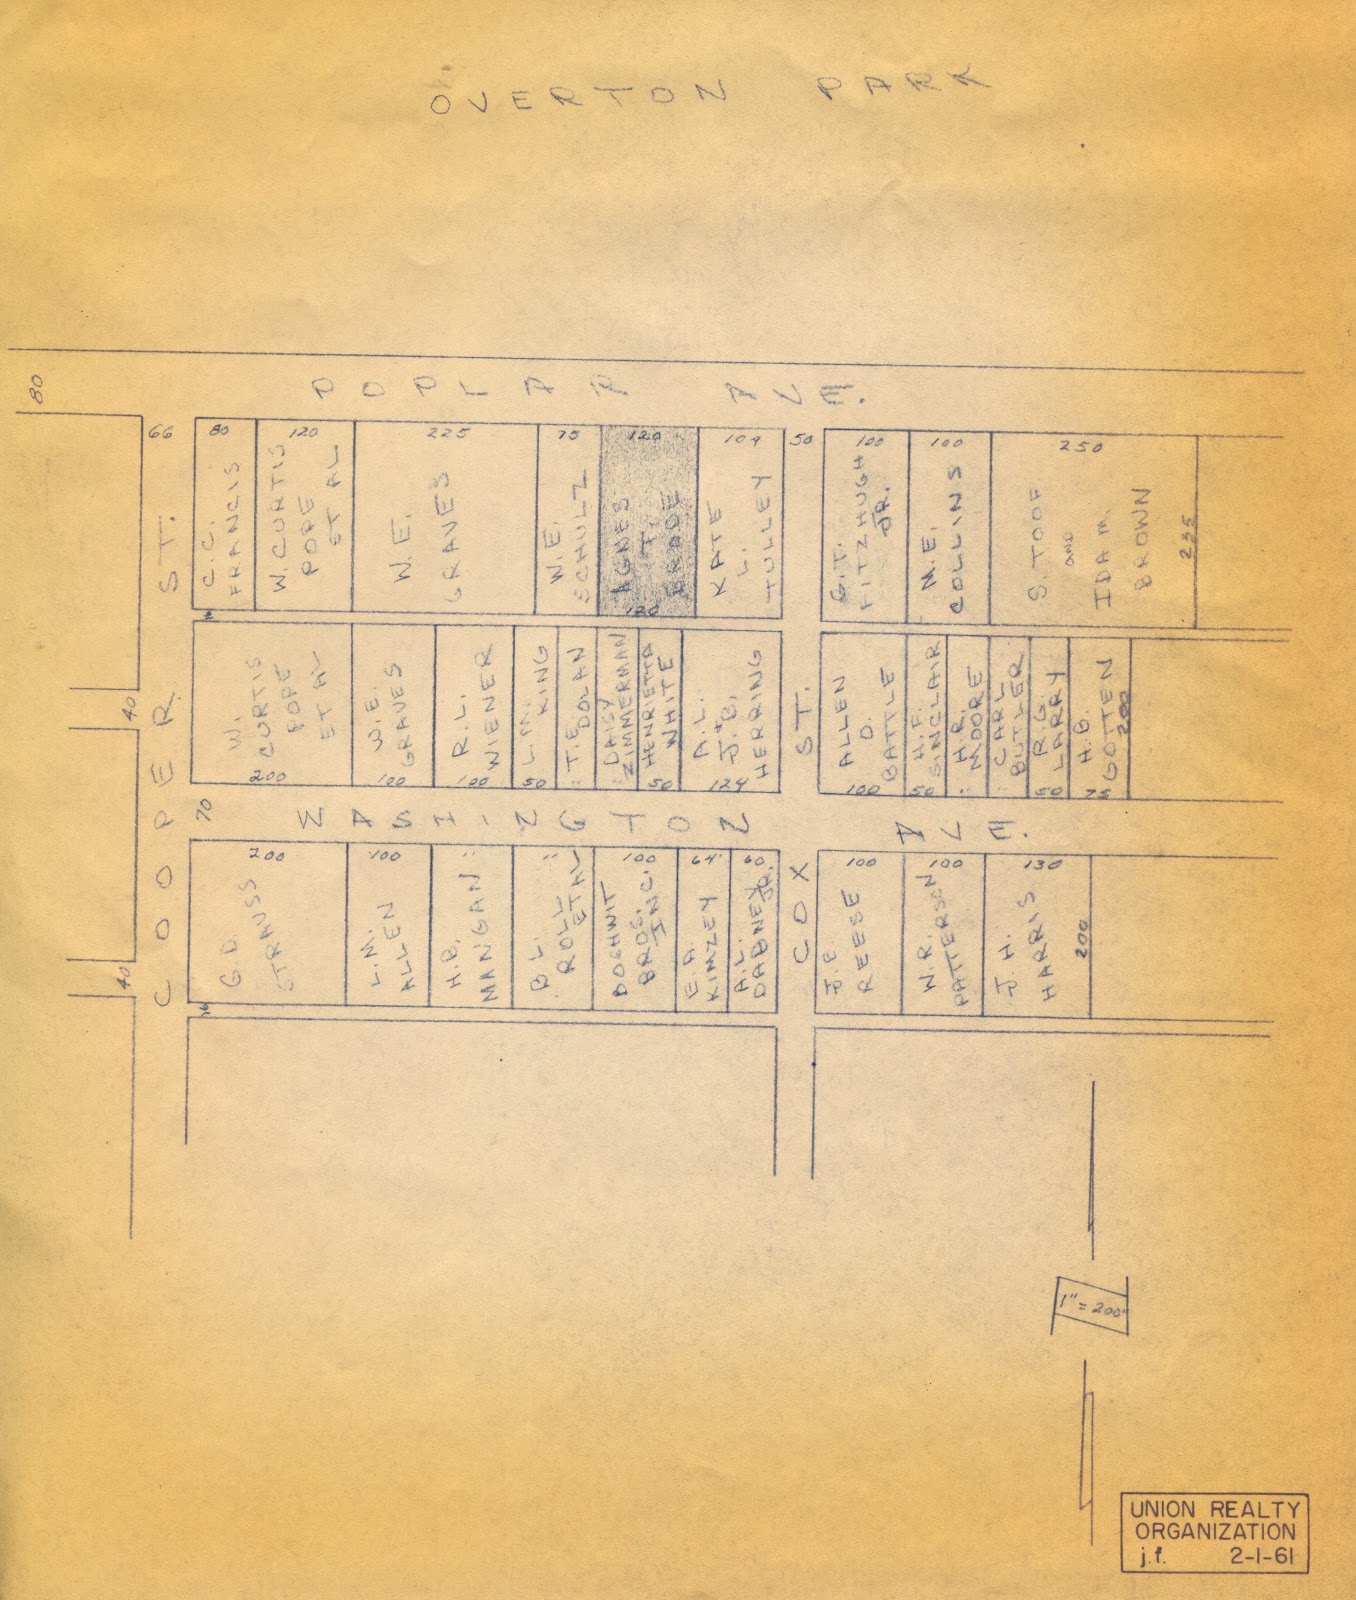 this map shows the subject site and its proximity to the neighbors you will note that ms daisy zimmerman still lived on washington ave in 1961